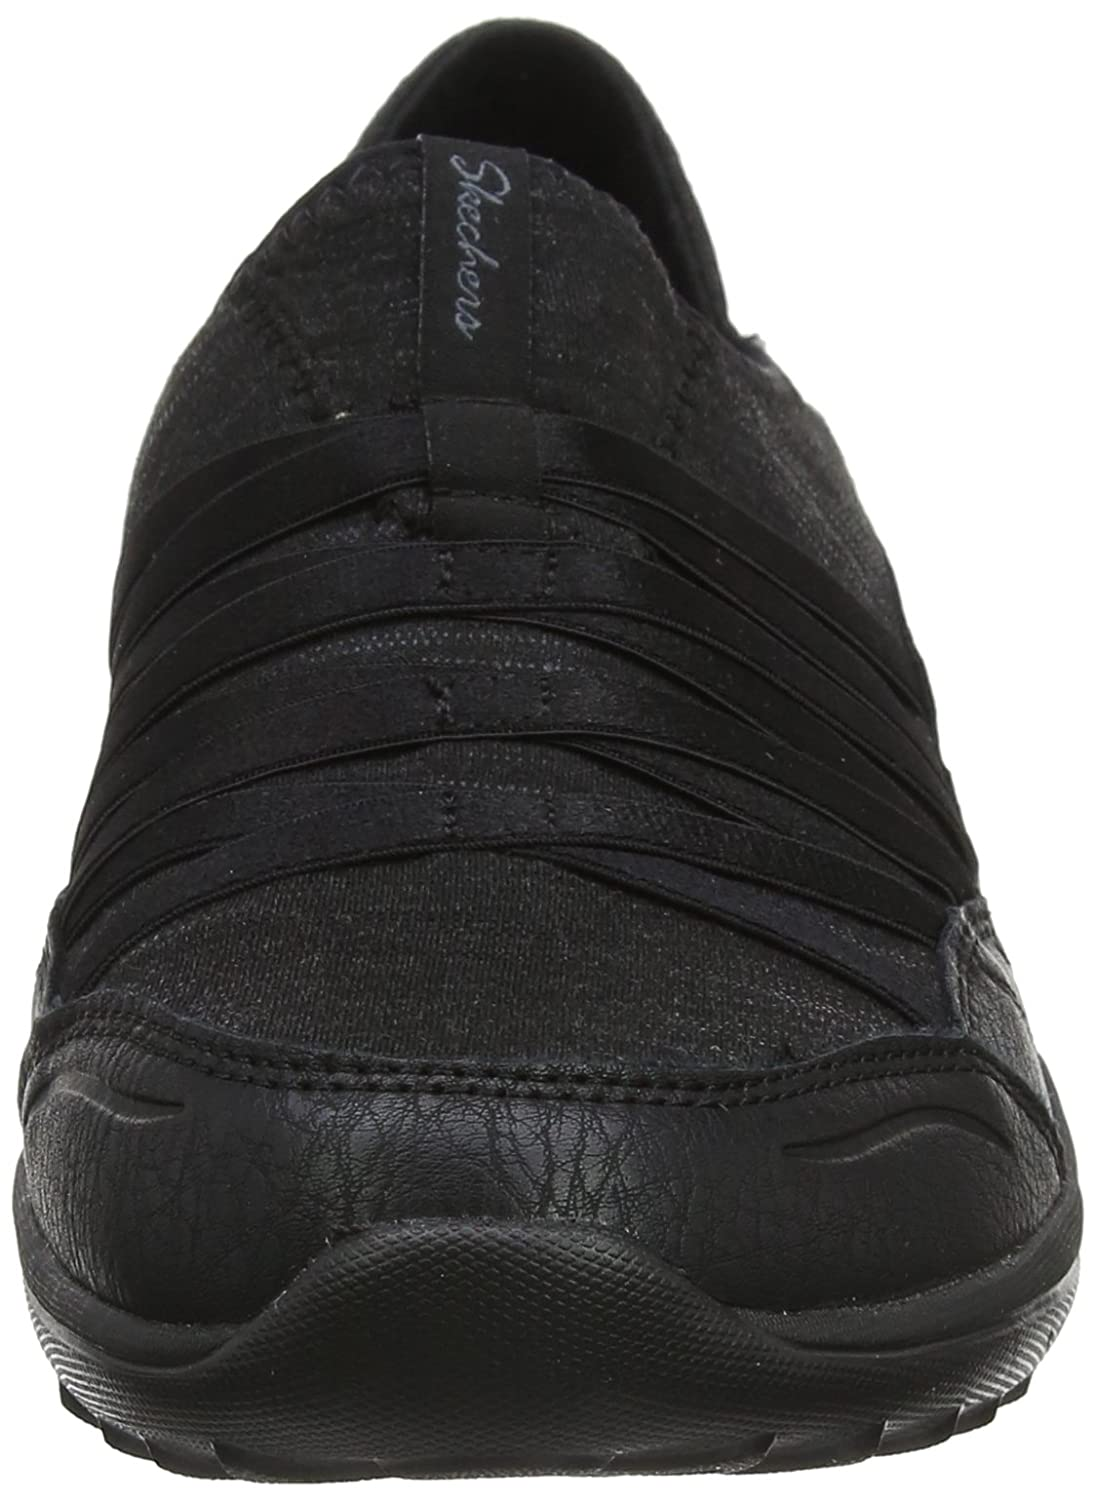 Skechers Be-Light-On The Groove, Zapatillas para Mujer, Negro (Black), 40 EU